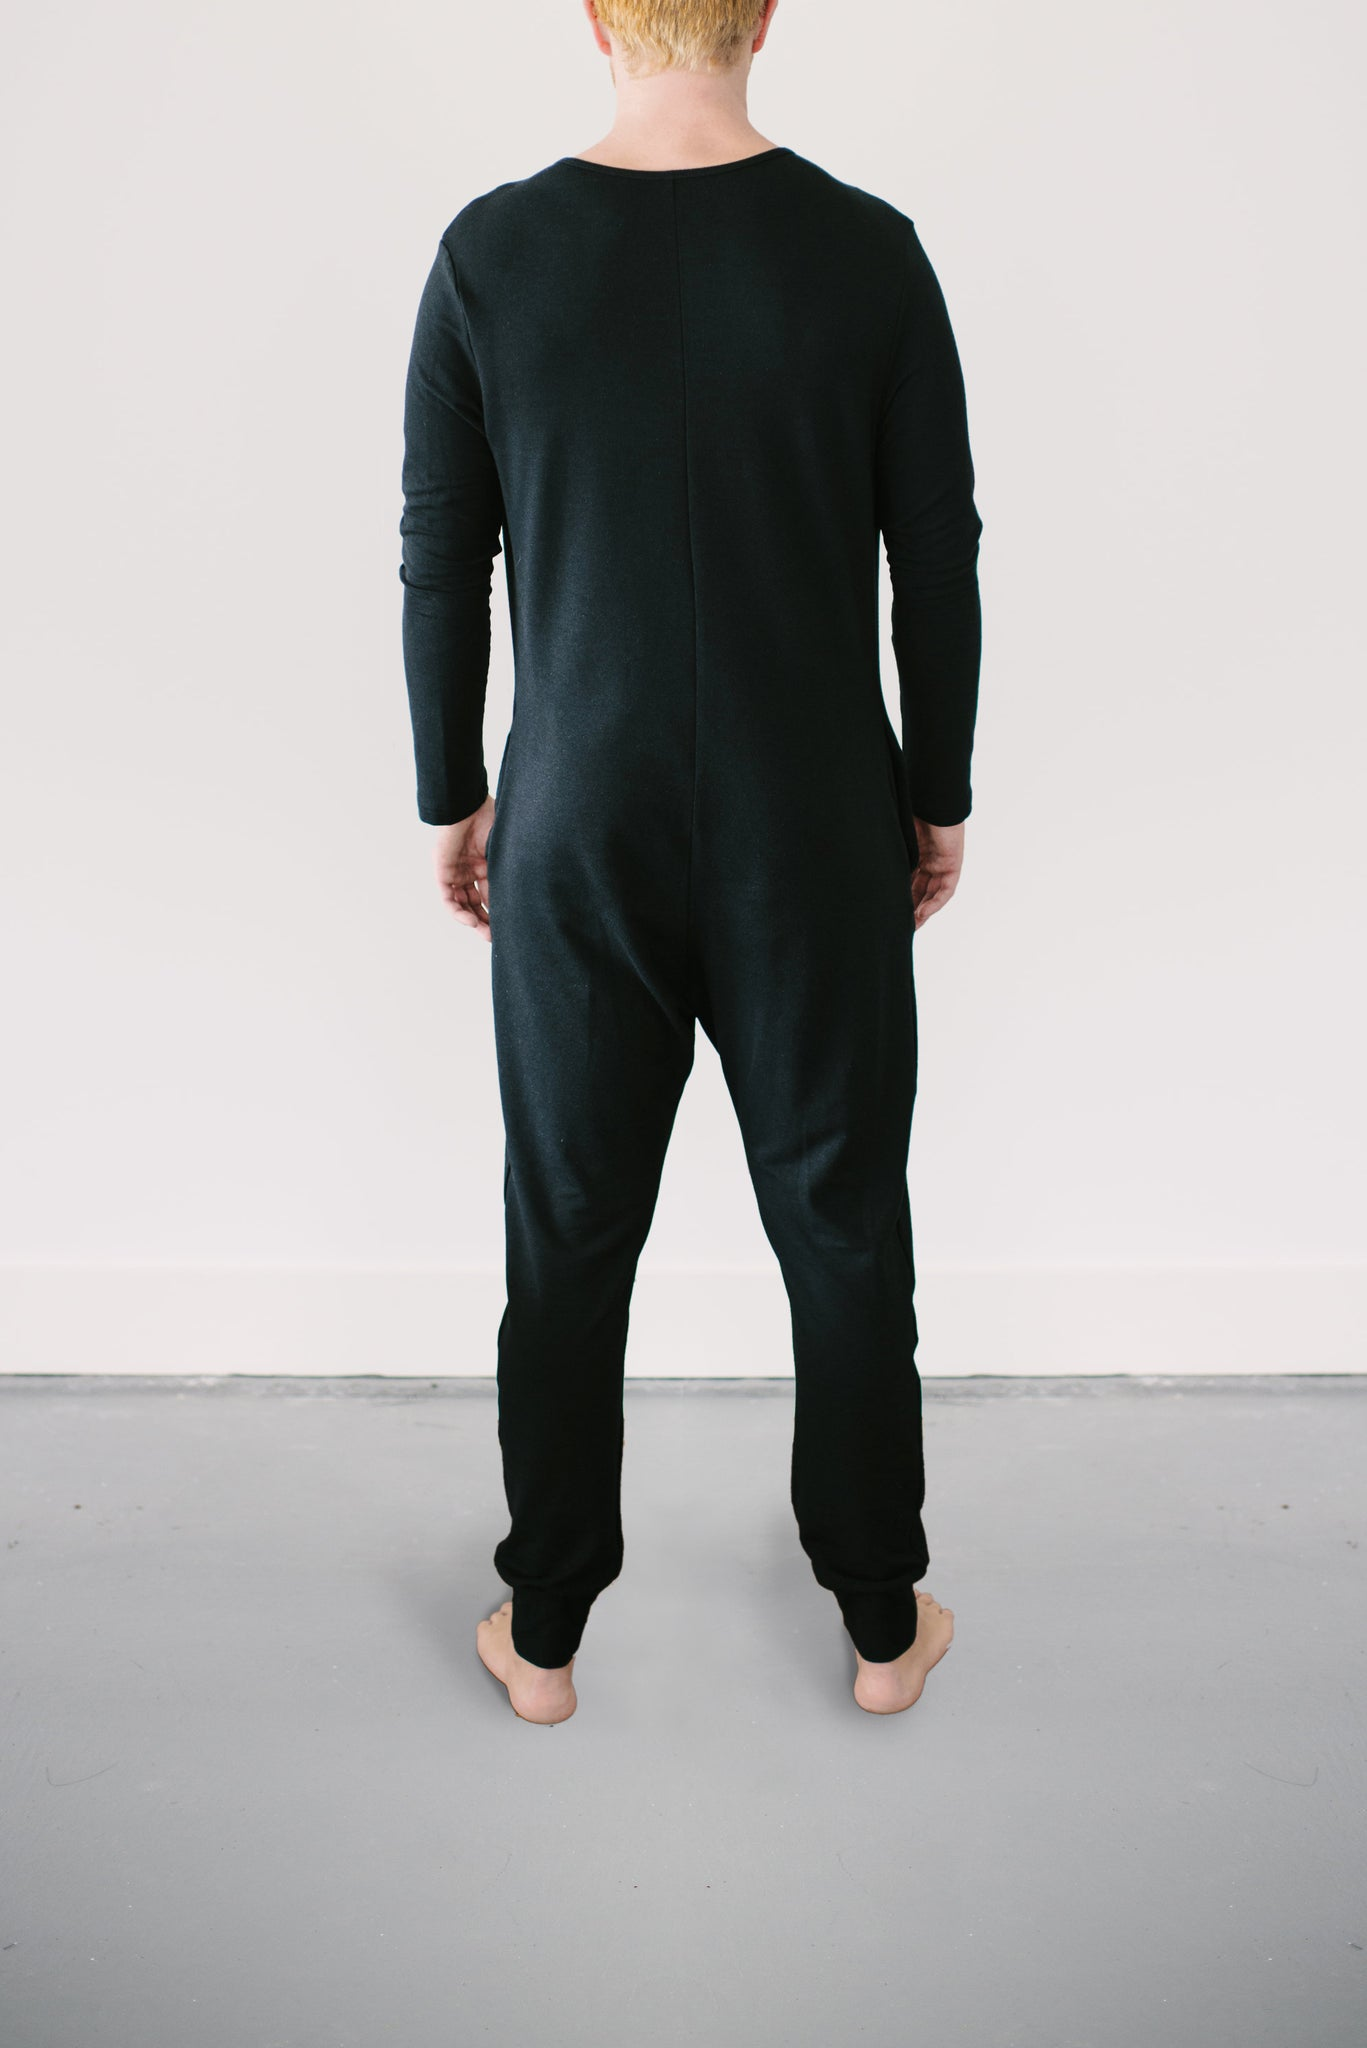 Loungewear for Men, Men's Romper, Romper for Men